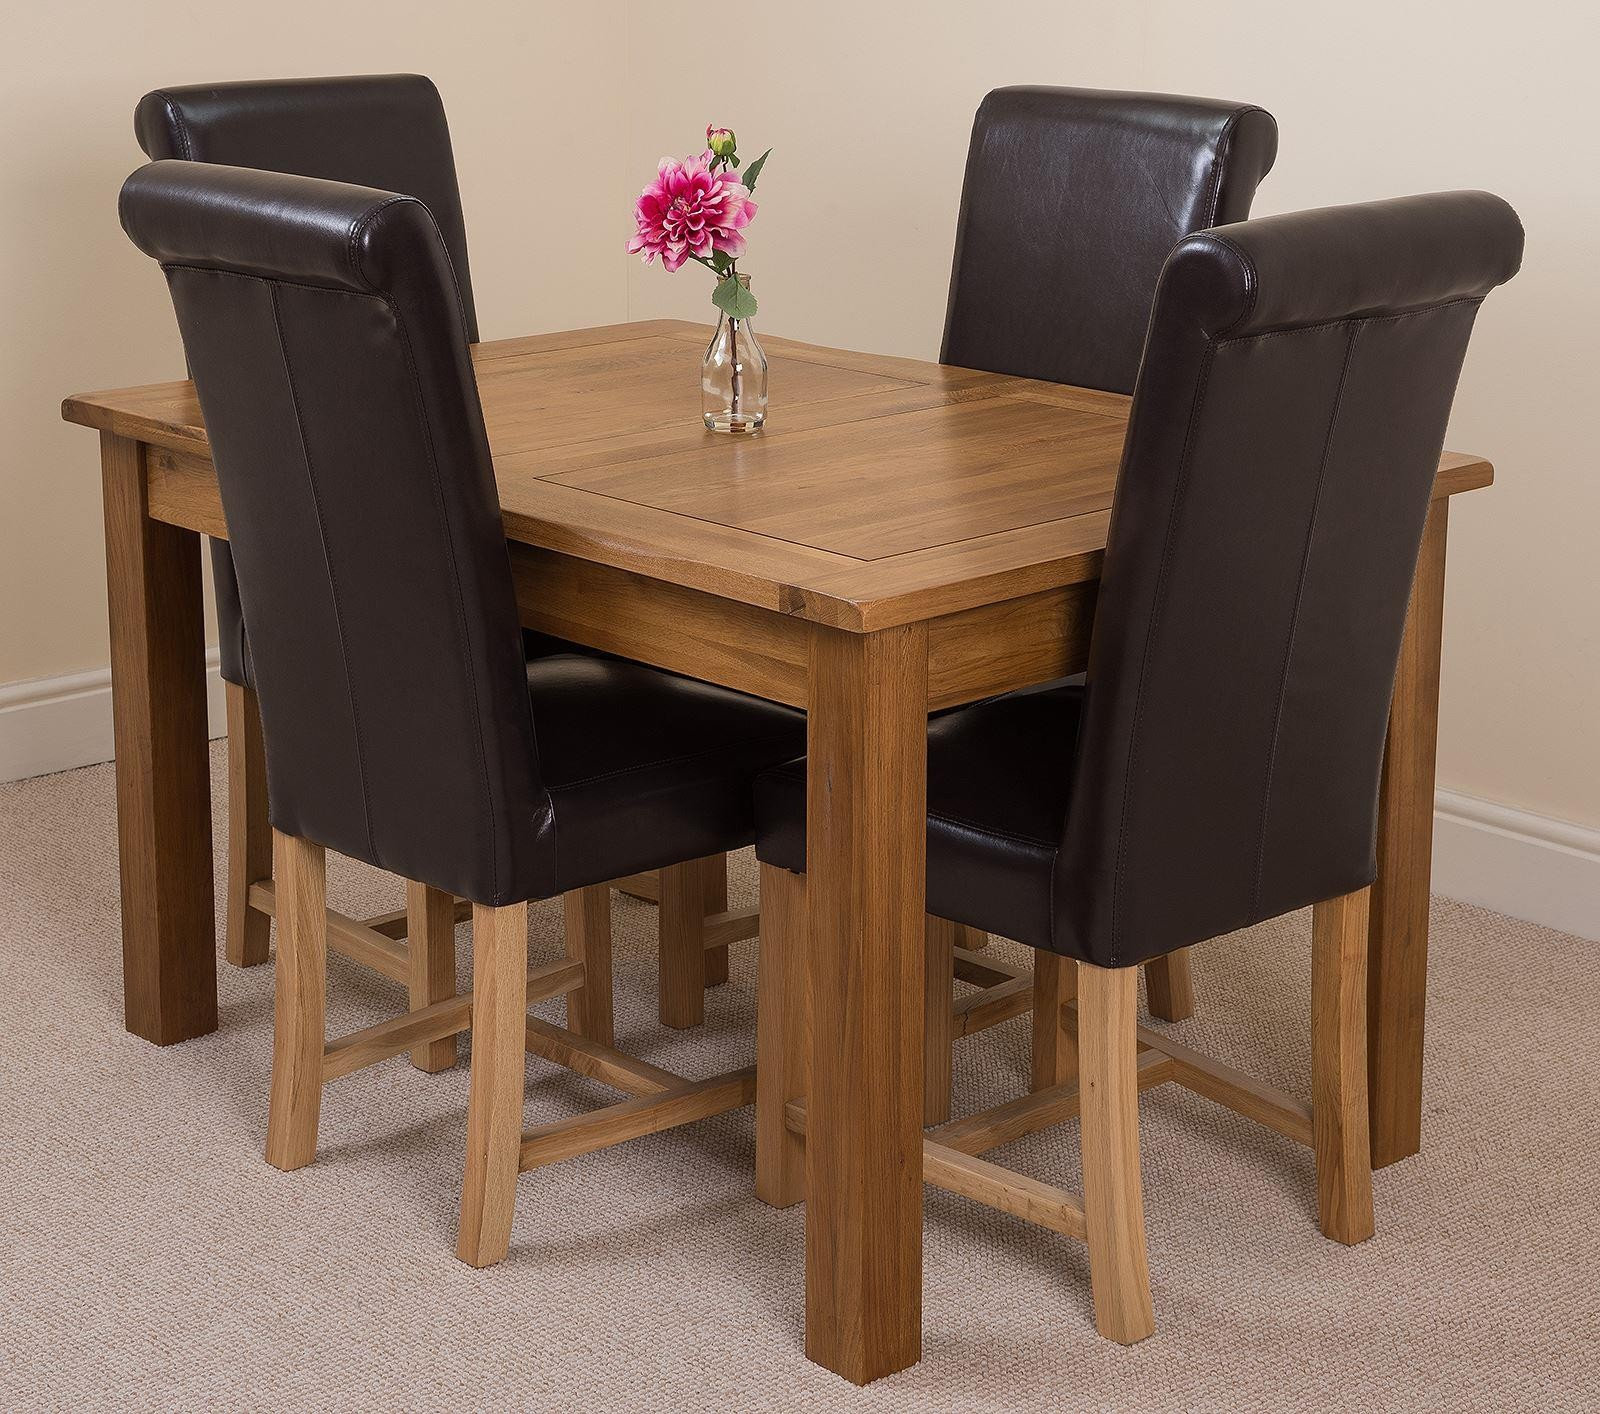 Cotswold Rustic Solid Oak 132cm-198cm Extending Farmhouse Dining Table with 4 Washington Dining Chairs [Brown Leather]